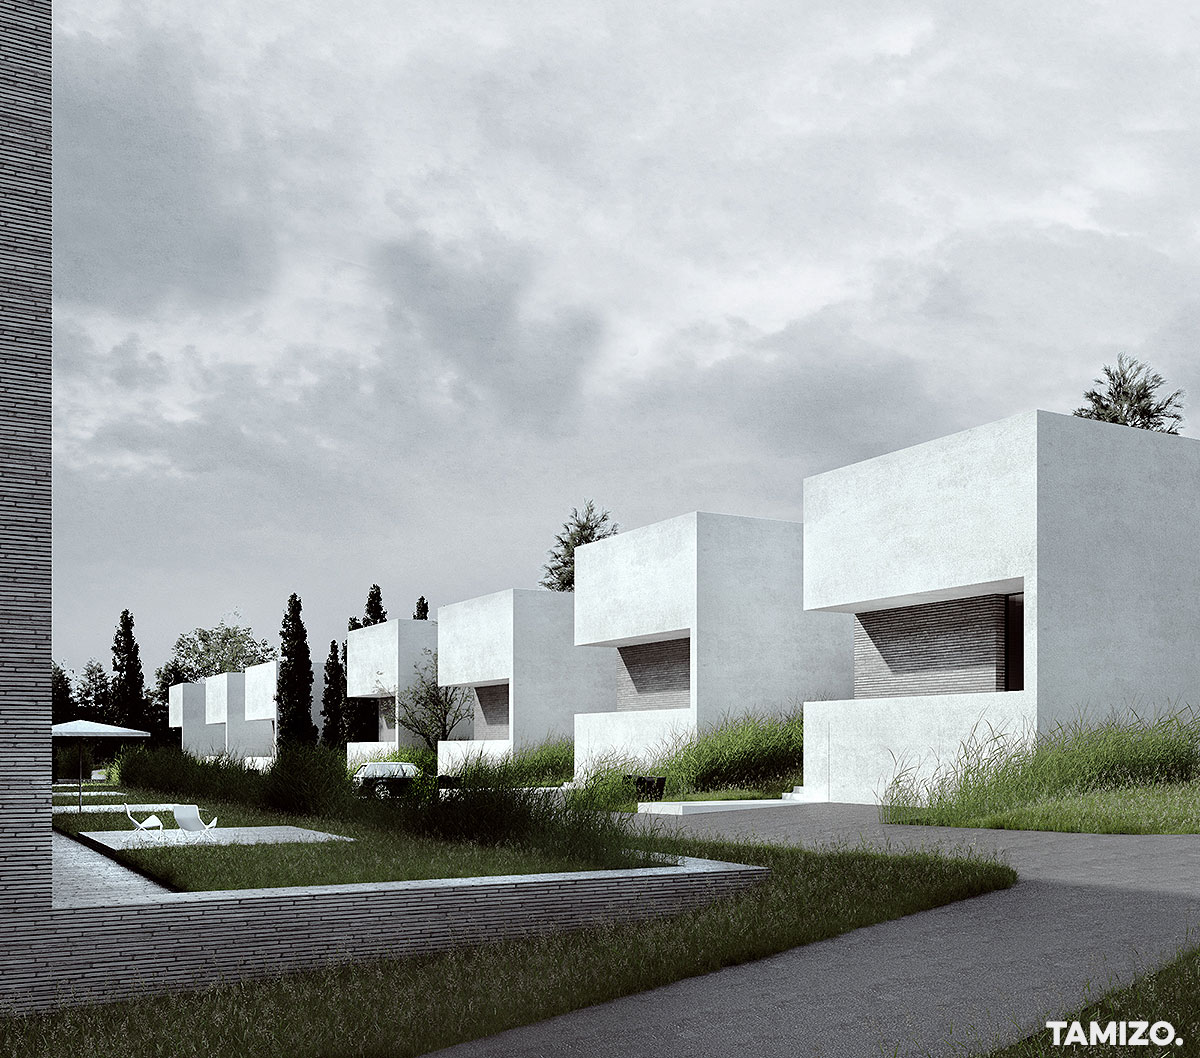 A061_tamizo_architects_competition_tbilisi_georgia_multifamily_houseing_realestate_12